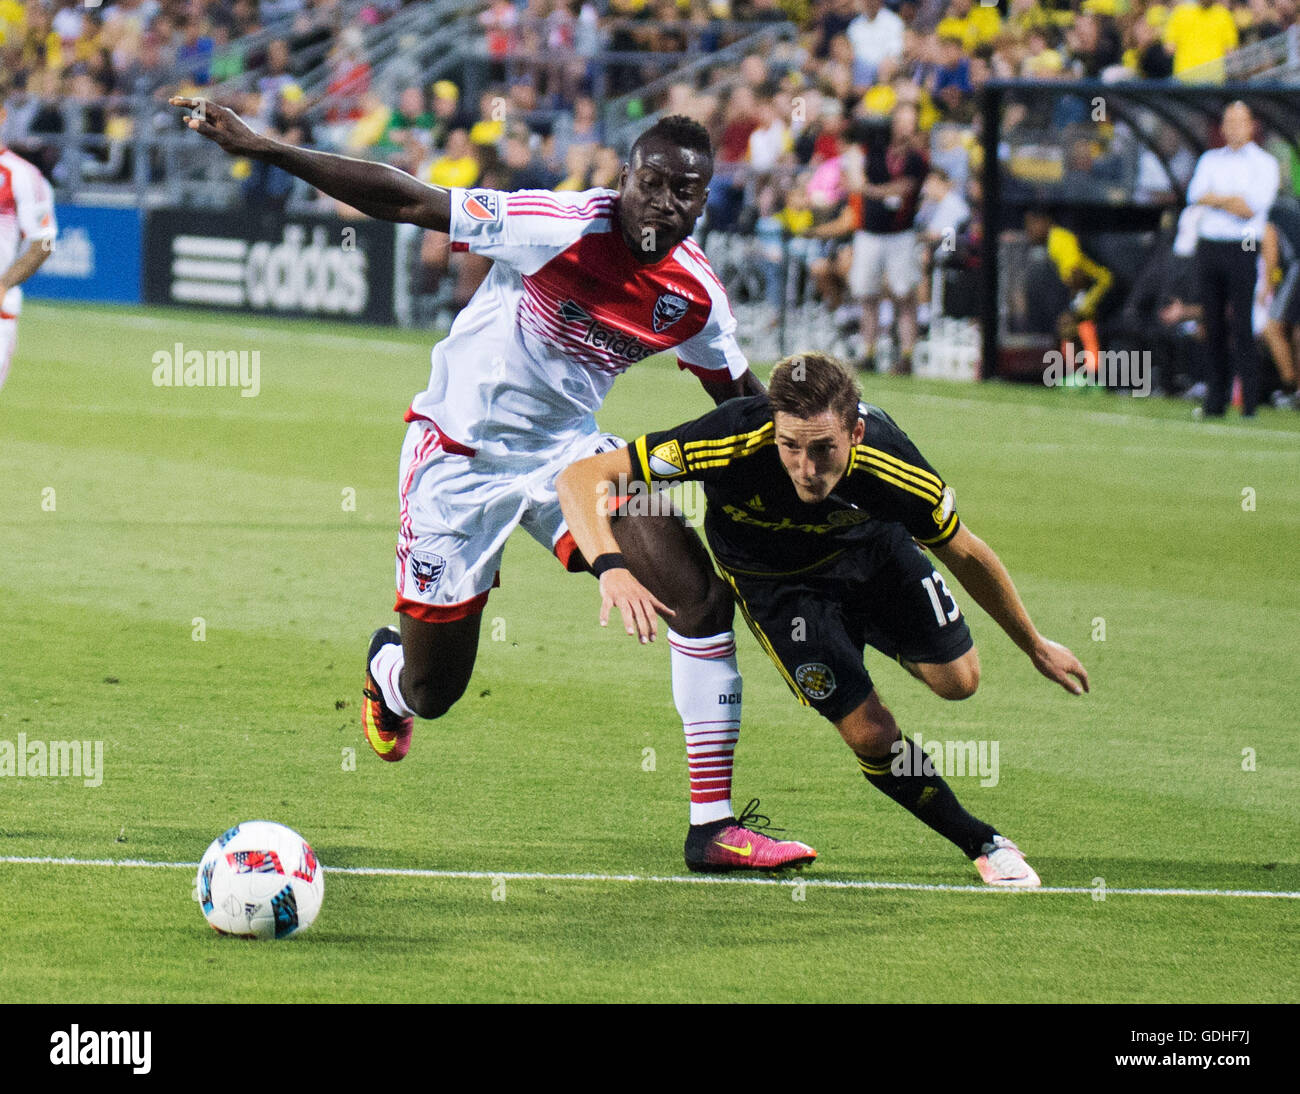 Columbus, U.S.A. 16th July, 2016. July 16, 2016: Columbus Crew SC midfielder Ethan Finlay (13) and D.C. United forward - Stock Image